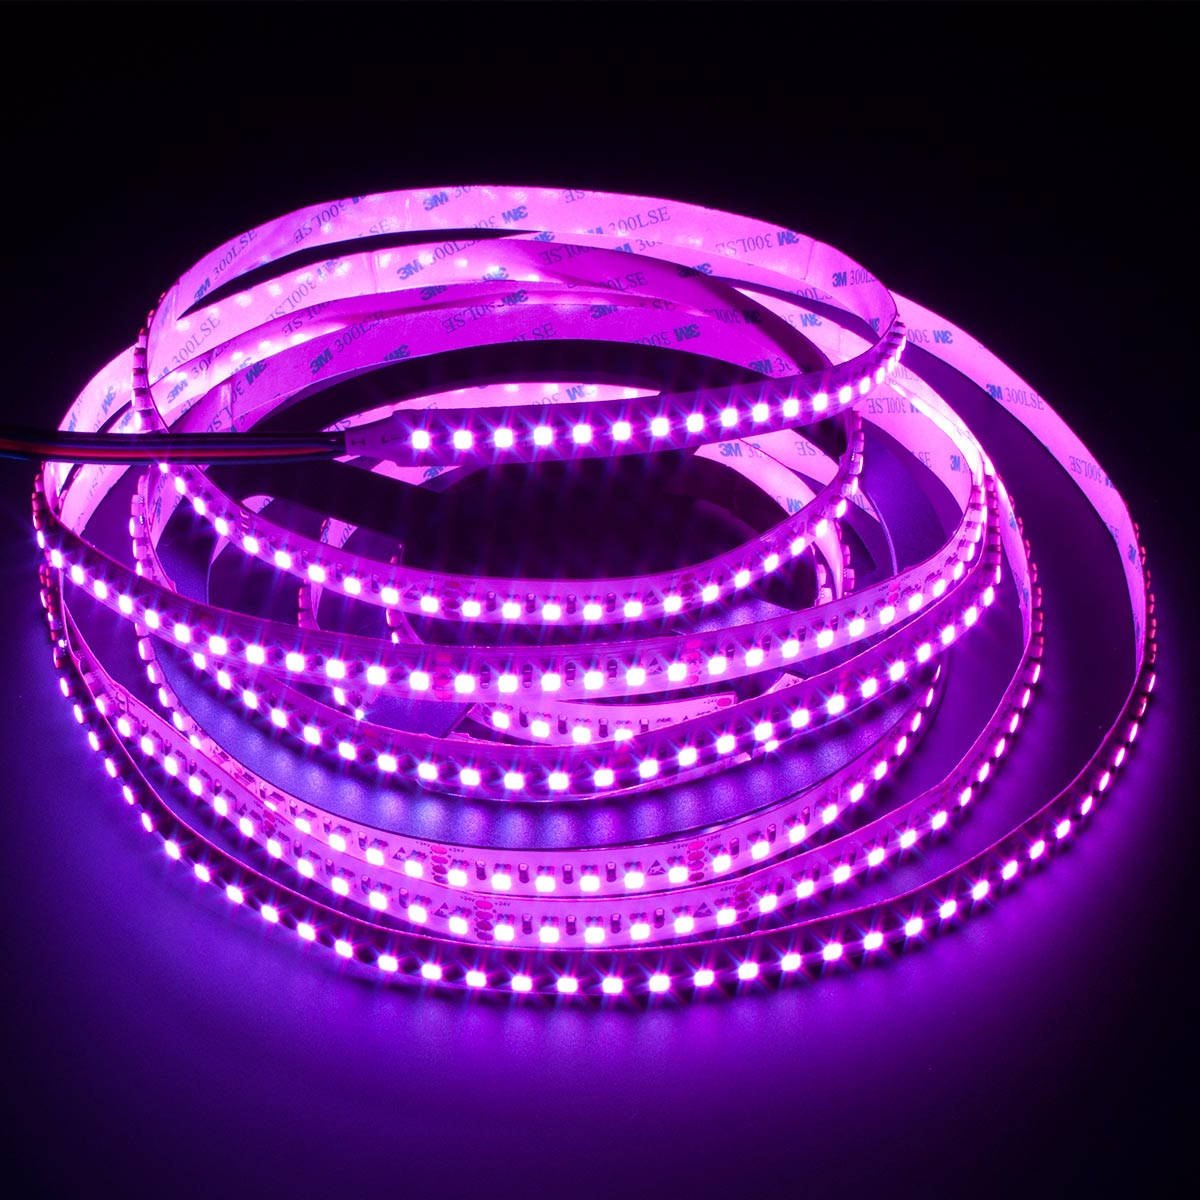 Color changing rgb 3535 150w led strip light ultrabright color changing rgb 3535 150w led strip light aloadofball Image collections